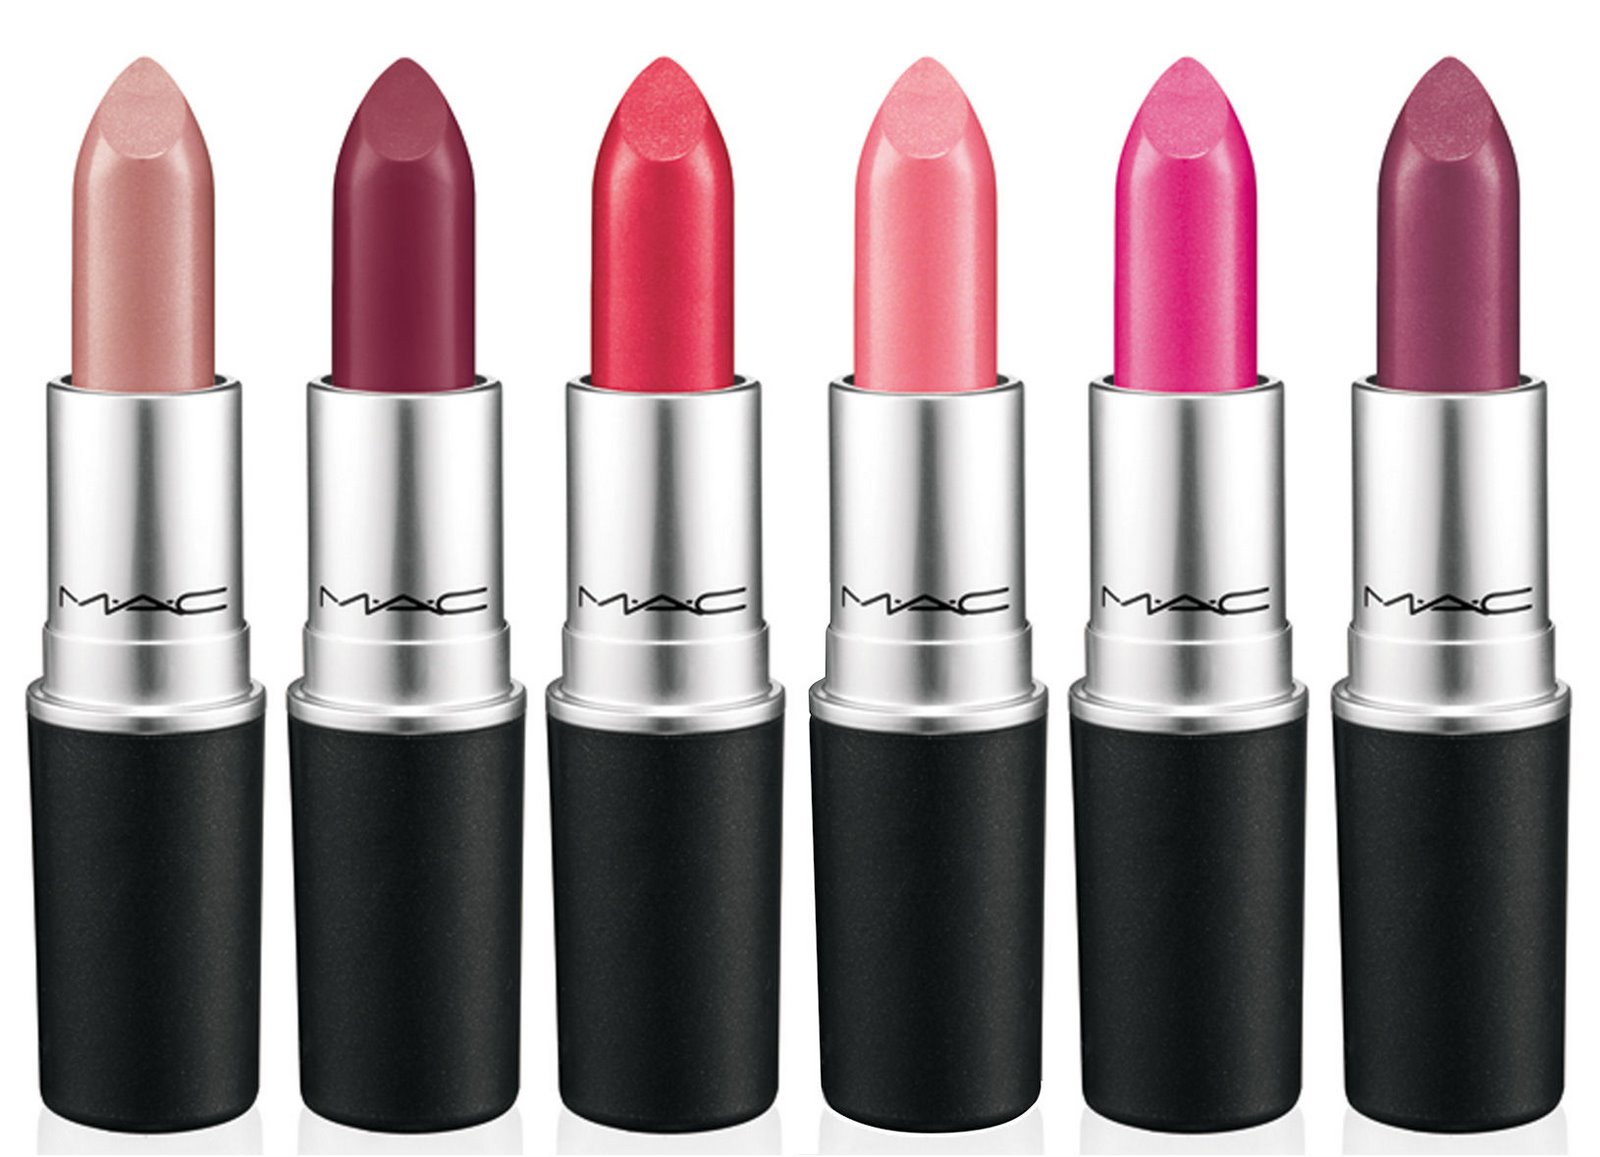 Top 10 Best & Most Popular Lipsticks Brands of all Time